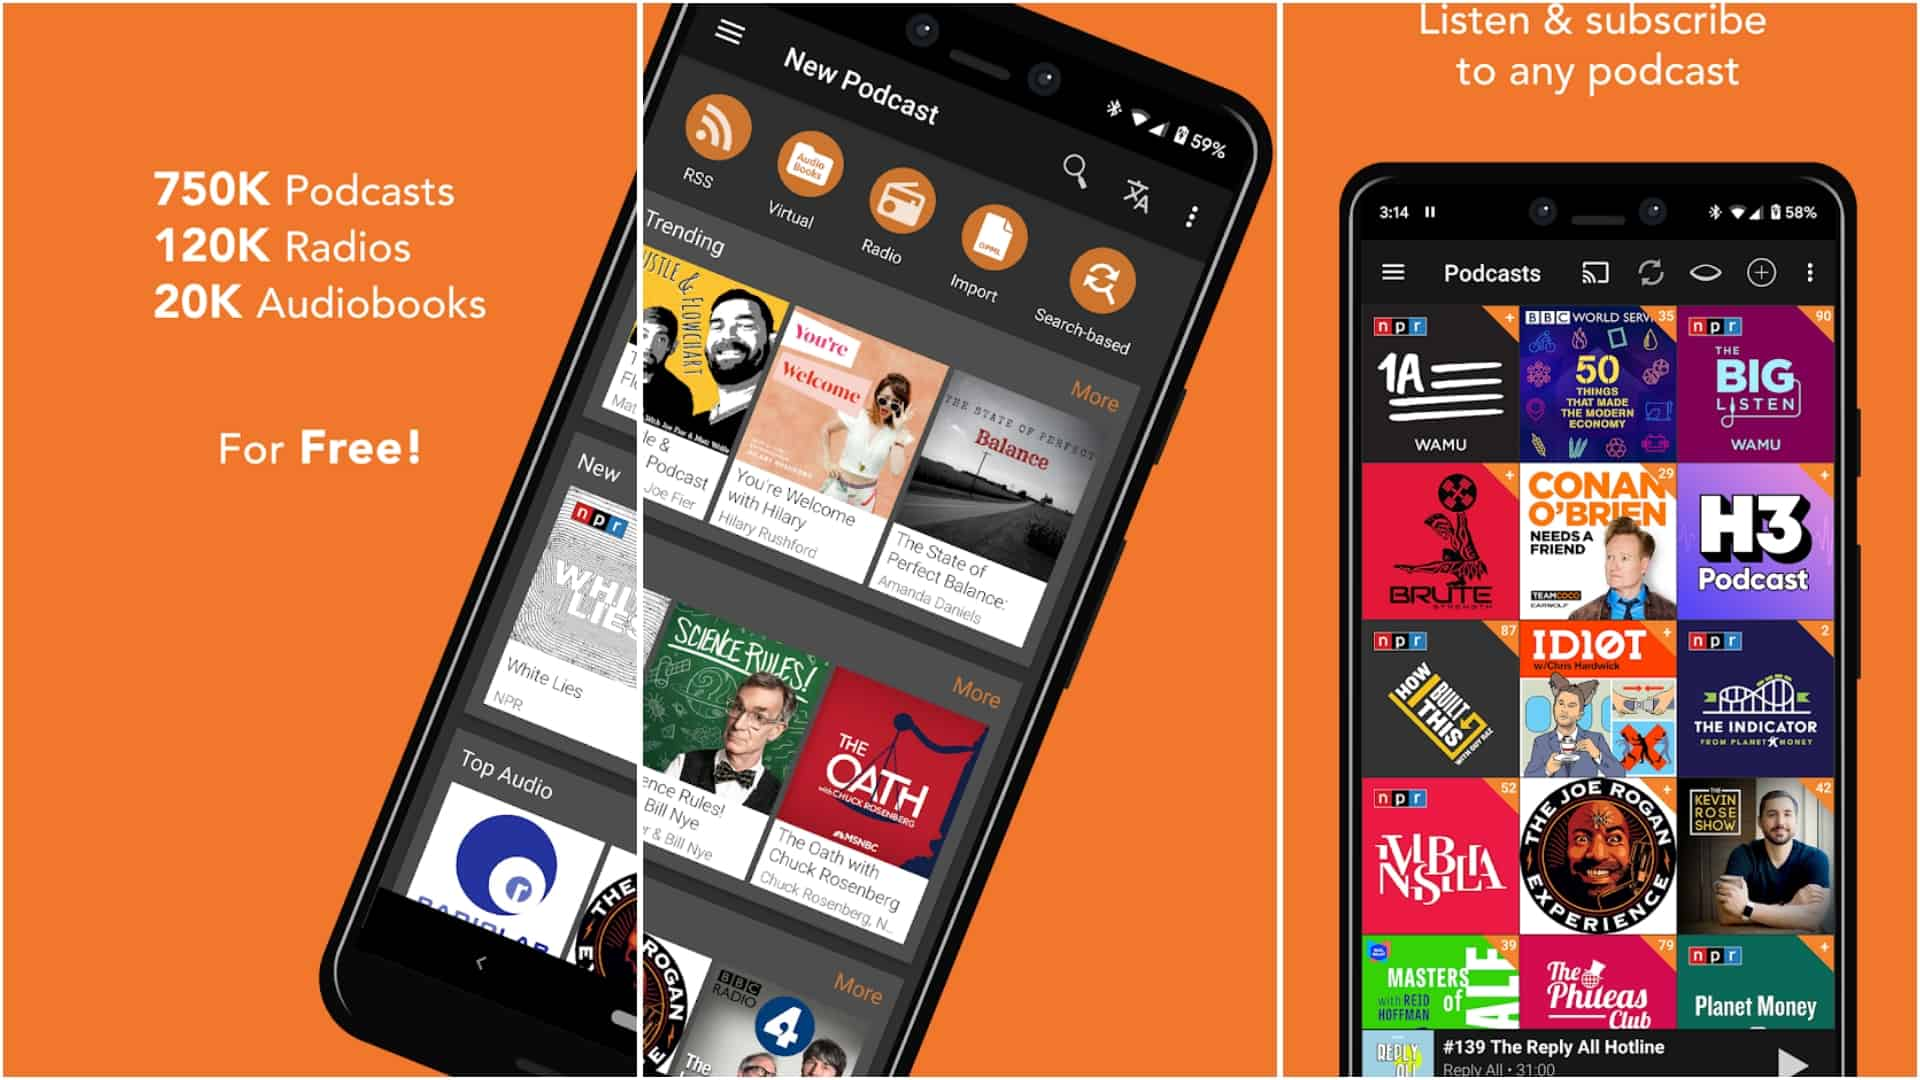 Podcast Addict app image April 2020